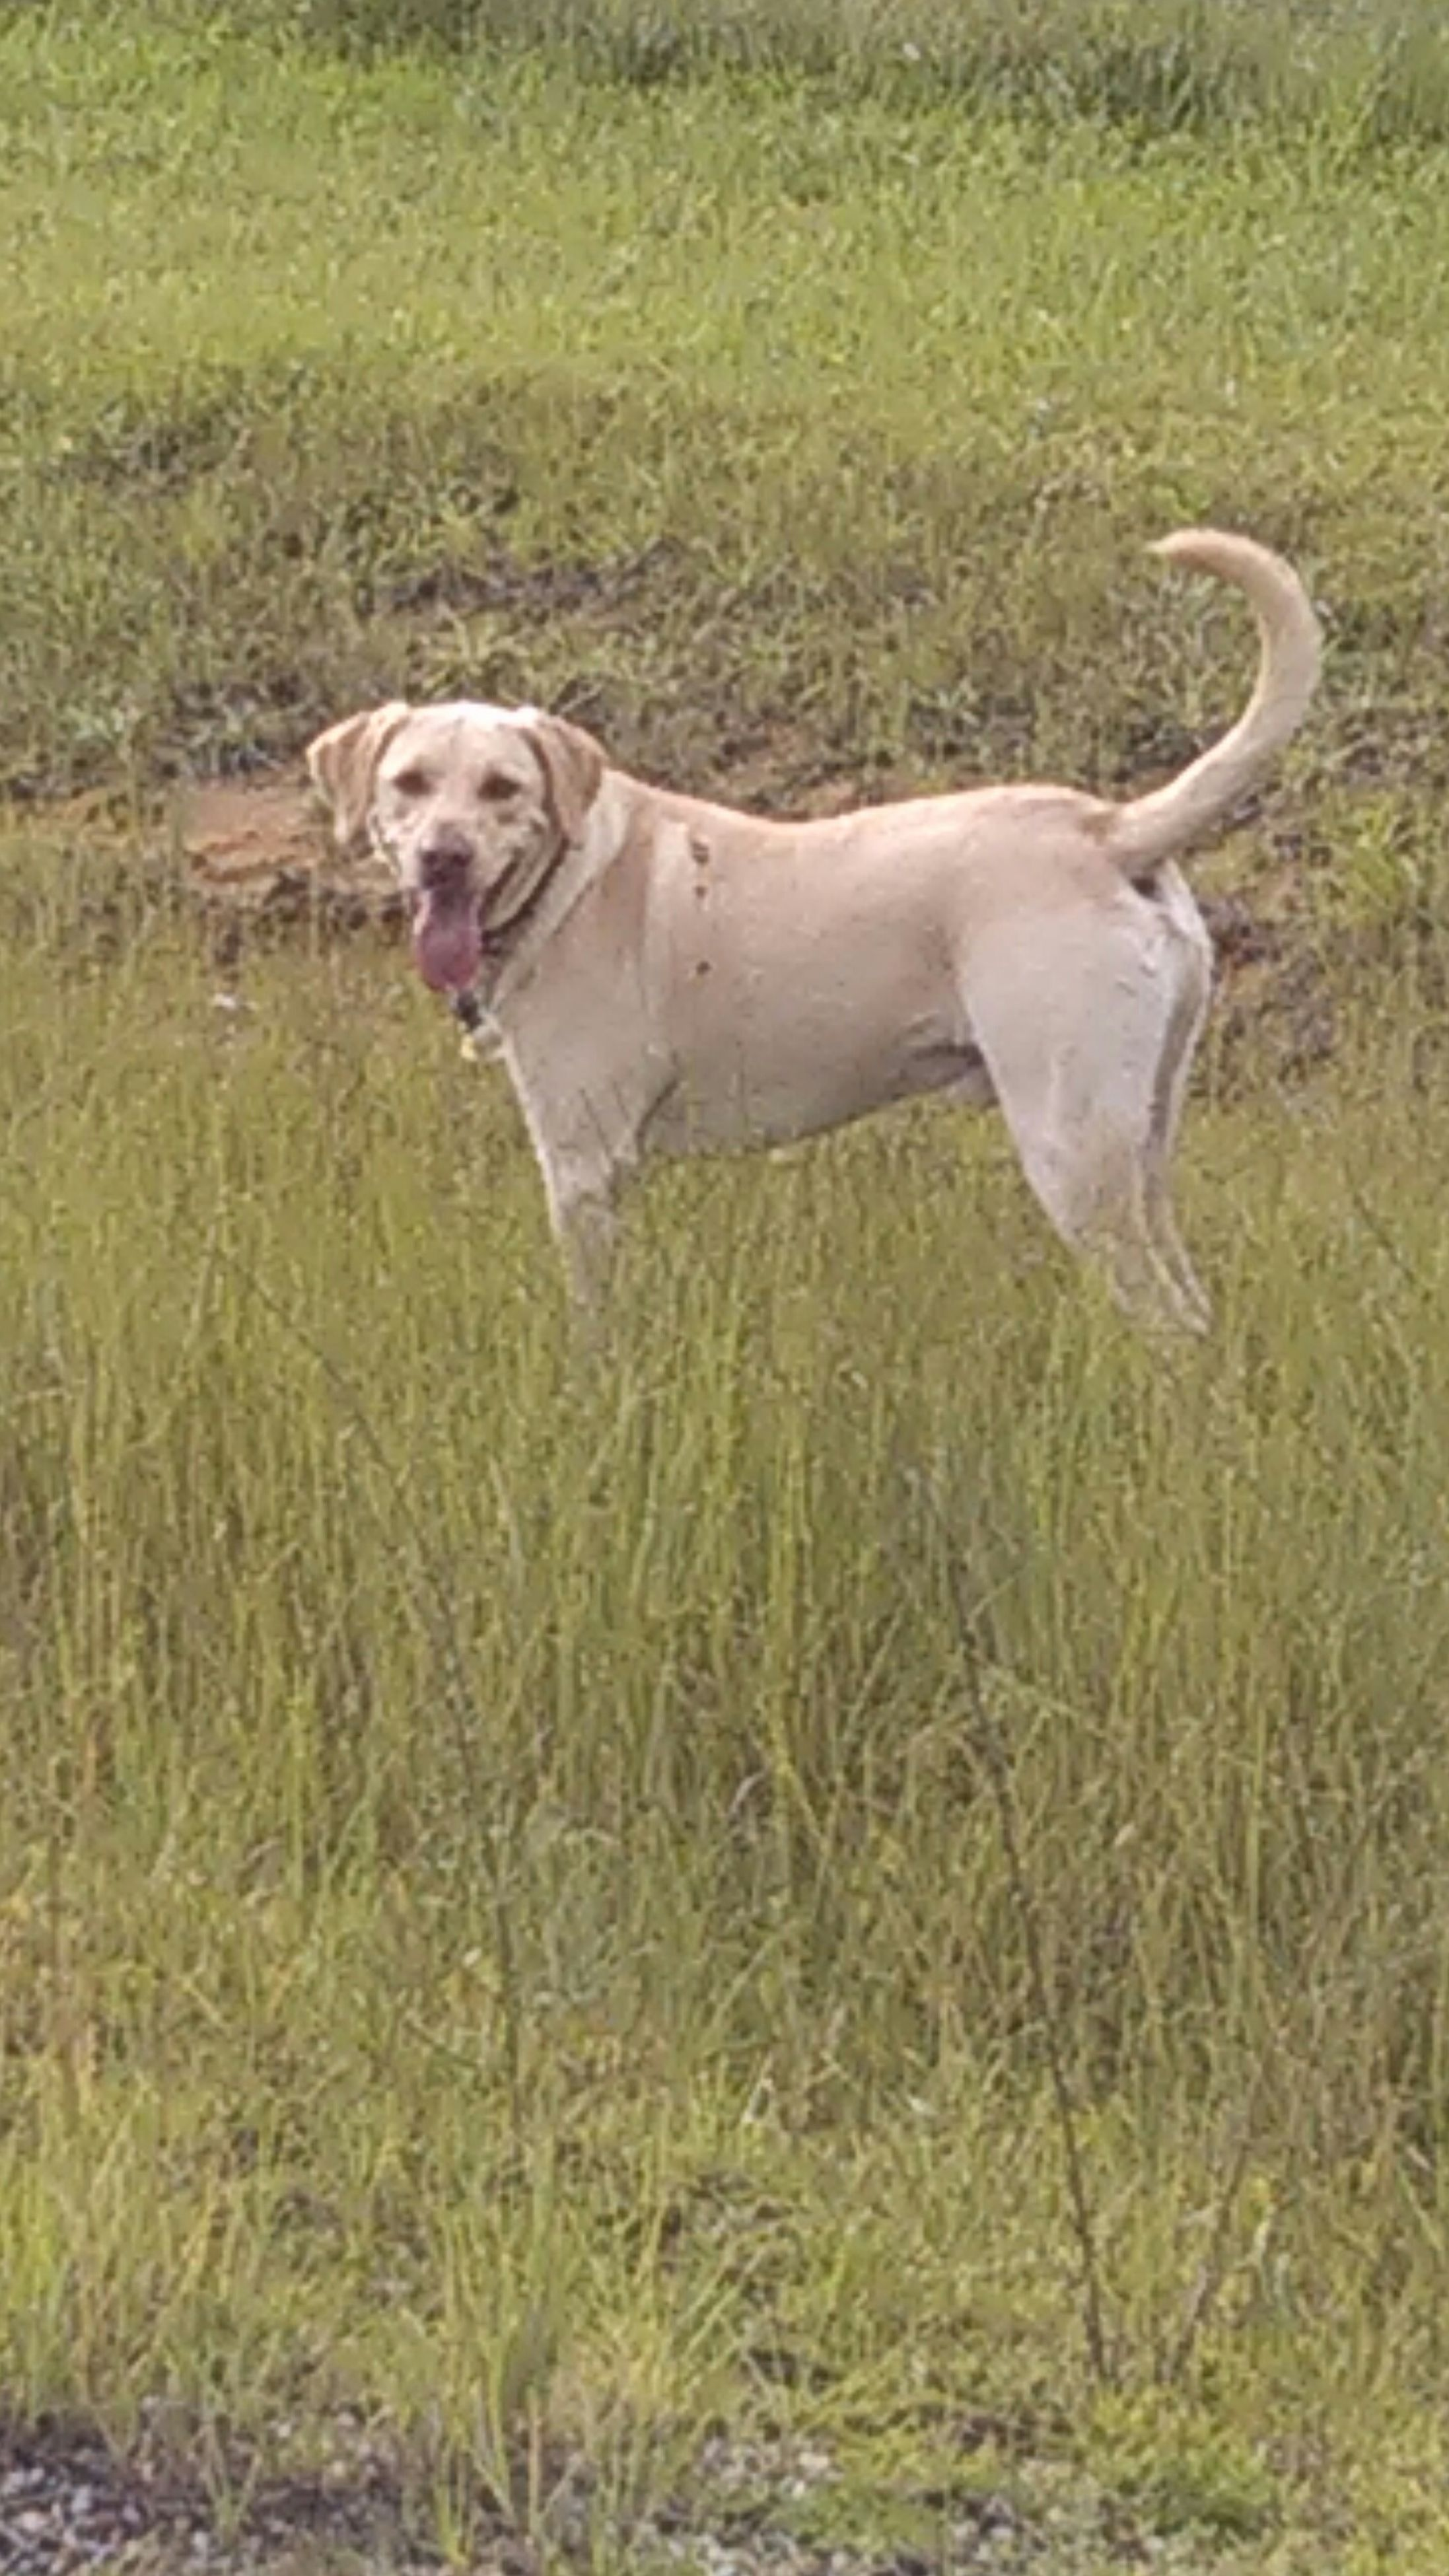 animal themes, grass, one animal, field, domestic animals, grassy, mammal, pets, full length, dog, green color, nature, side view, standing, two animals, day, outdoors, running, animals in the wild, no people